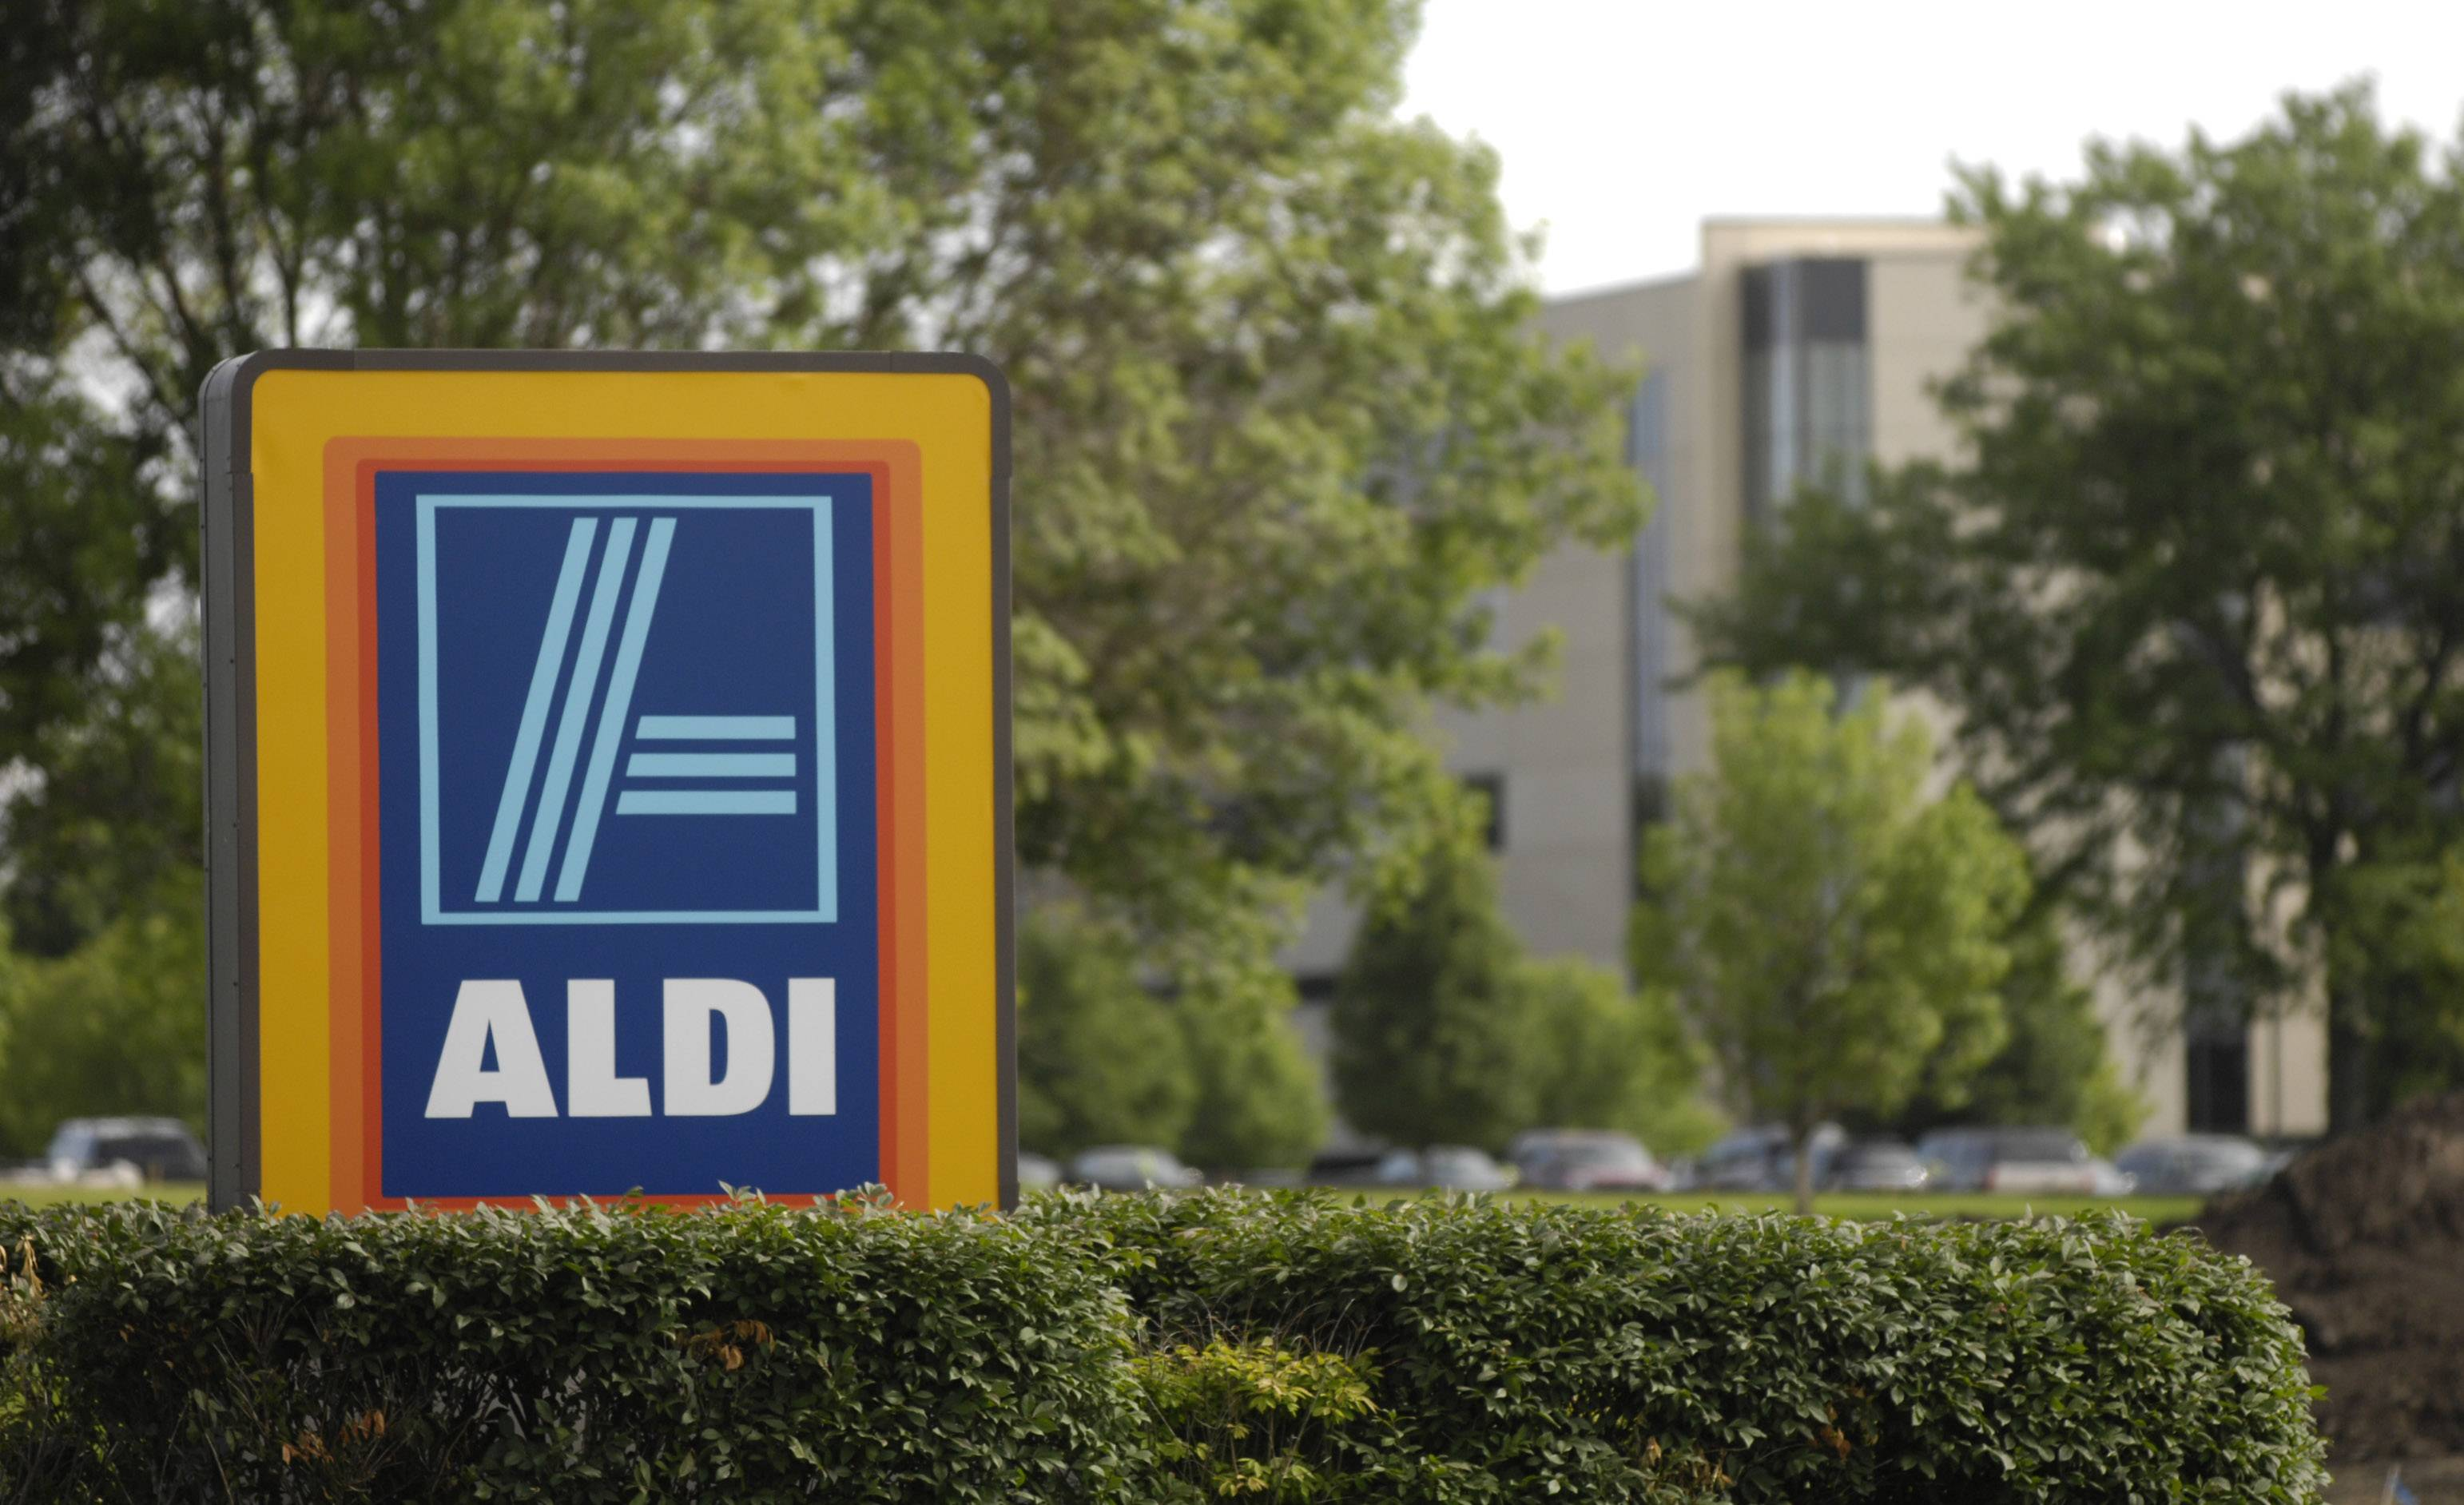 Aldi to spend $180 million on remodel